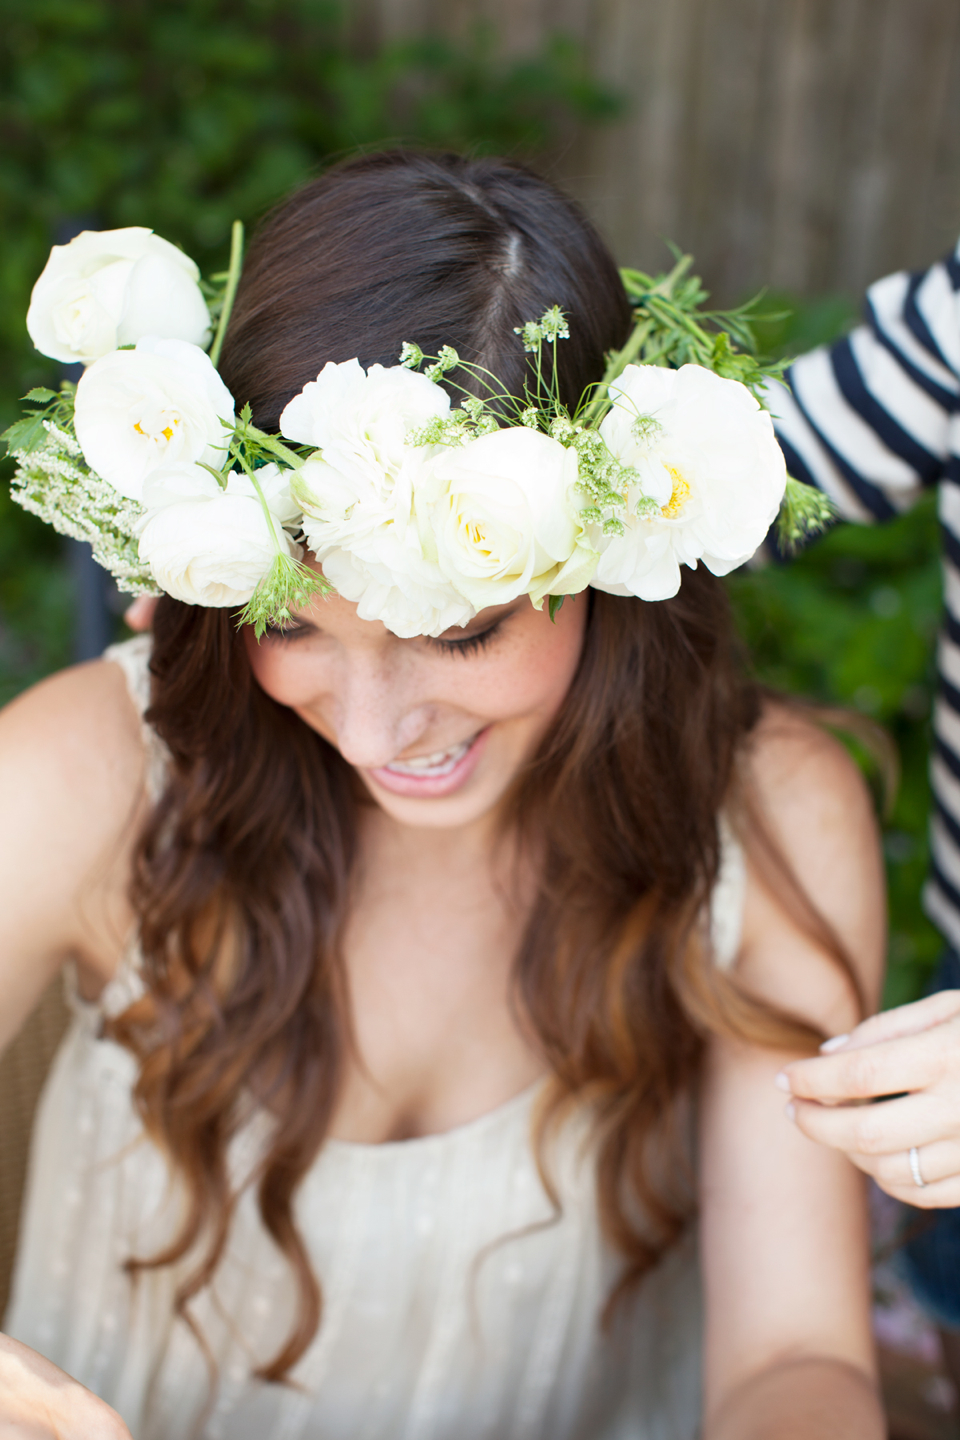 How to make your own flower crown diy flower crowns and wreaths how to make your own flower crown diy flower crowns and wreaths cheetah is the new black izmirmasajfo Images